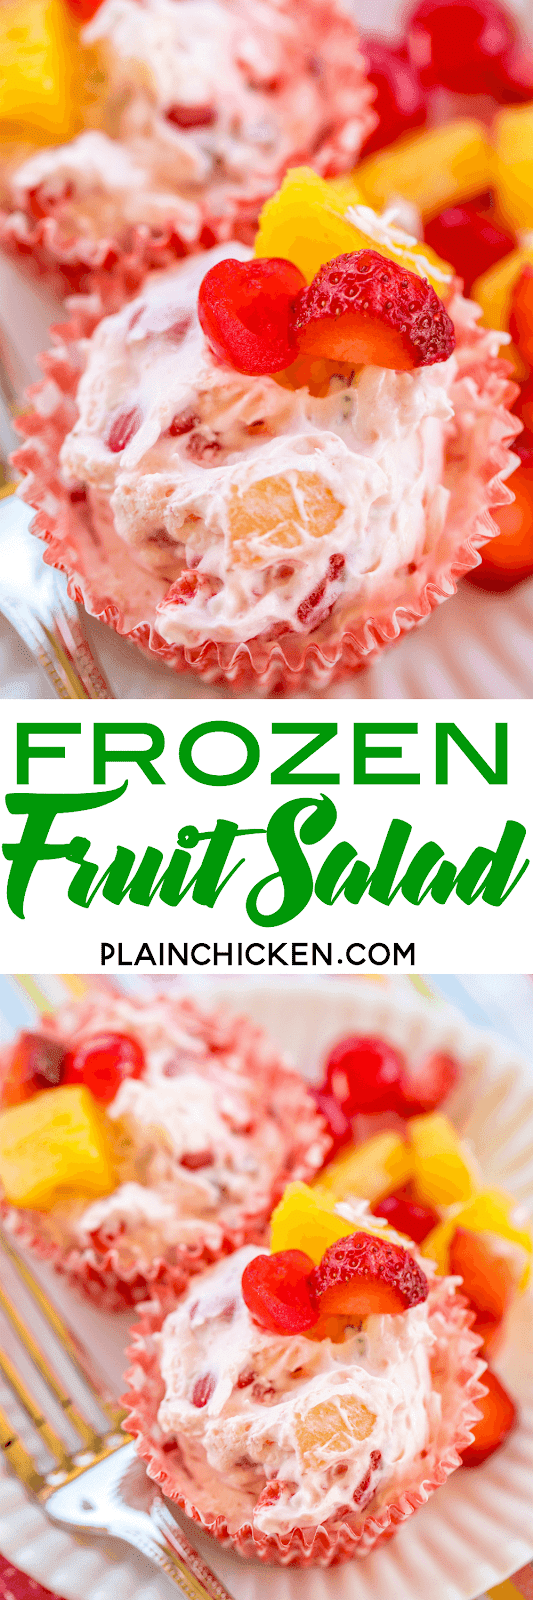 Frozen Fruit Salad - easy and delicious dessert!!! Cream cheese, cool whip, cherries, pineapple, strawberries, coconut and pecans. Make ahead of time and keep frozen until ready to serve. Great for all your summer cookouts!! A great way to beat the heat this summer!! #dessert #fruit #fruitsalad #frozen